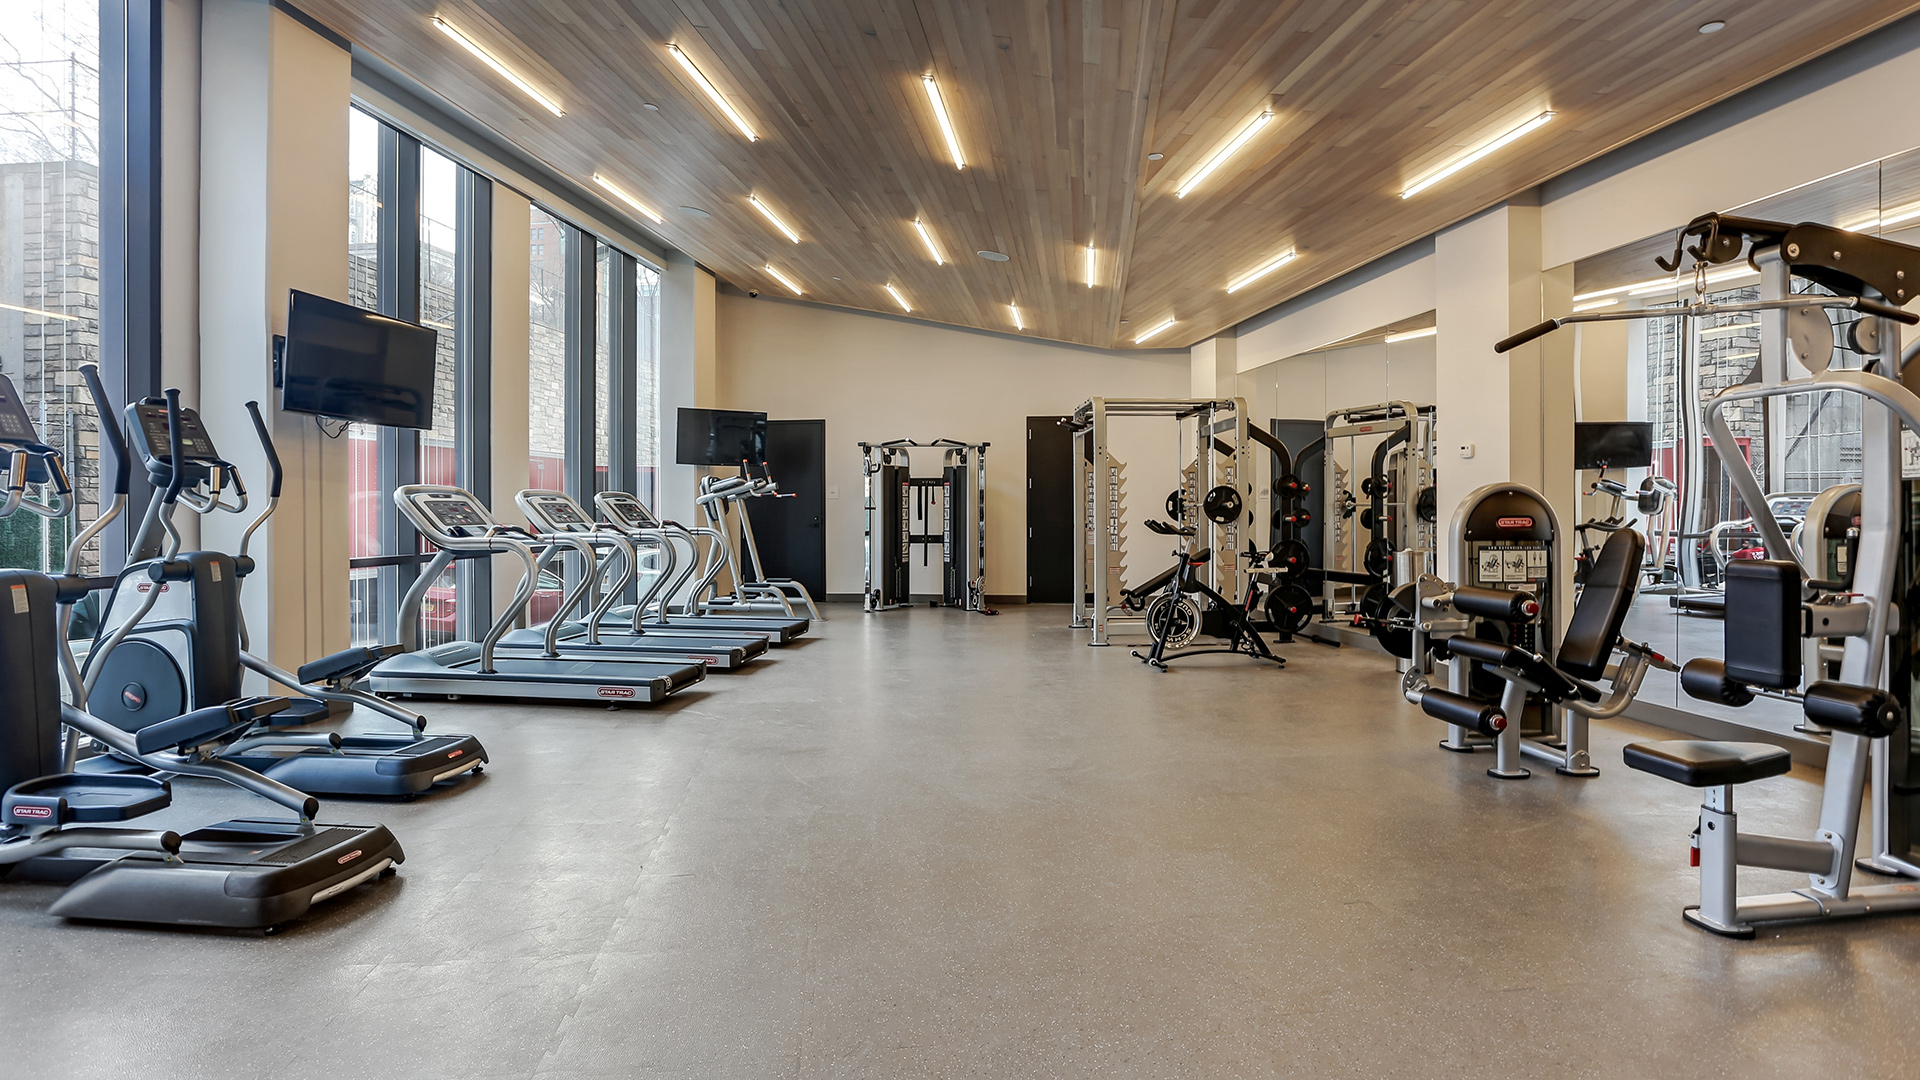 Fitness Center Construction : Condos for sale in brooklyn pierhouse at bridge